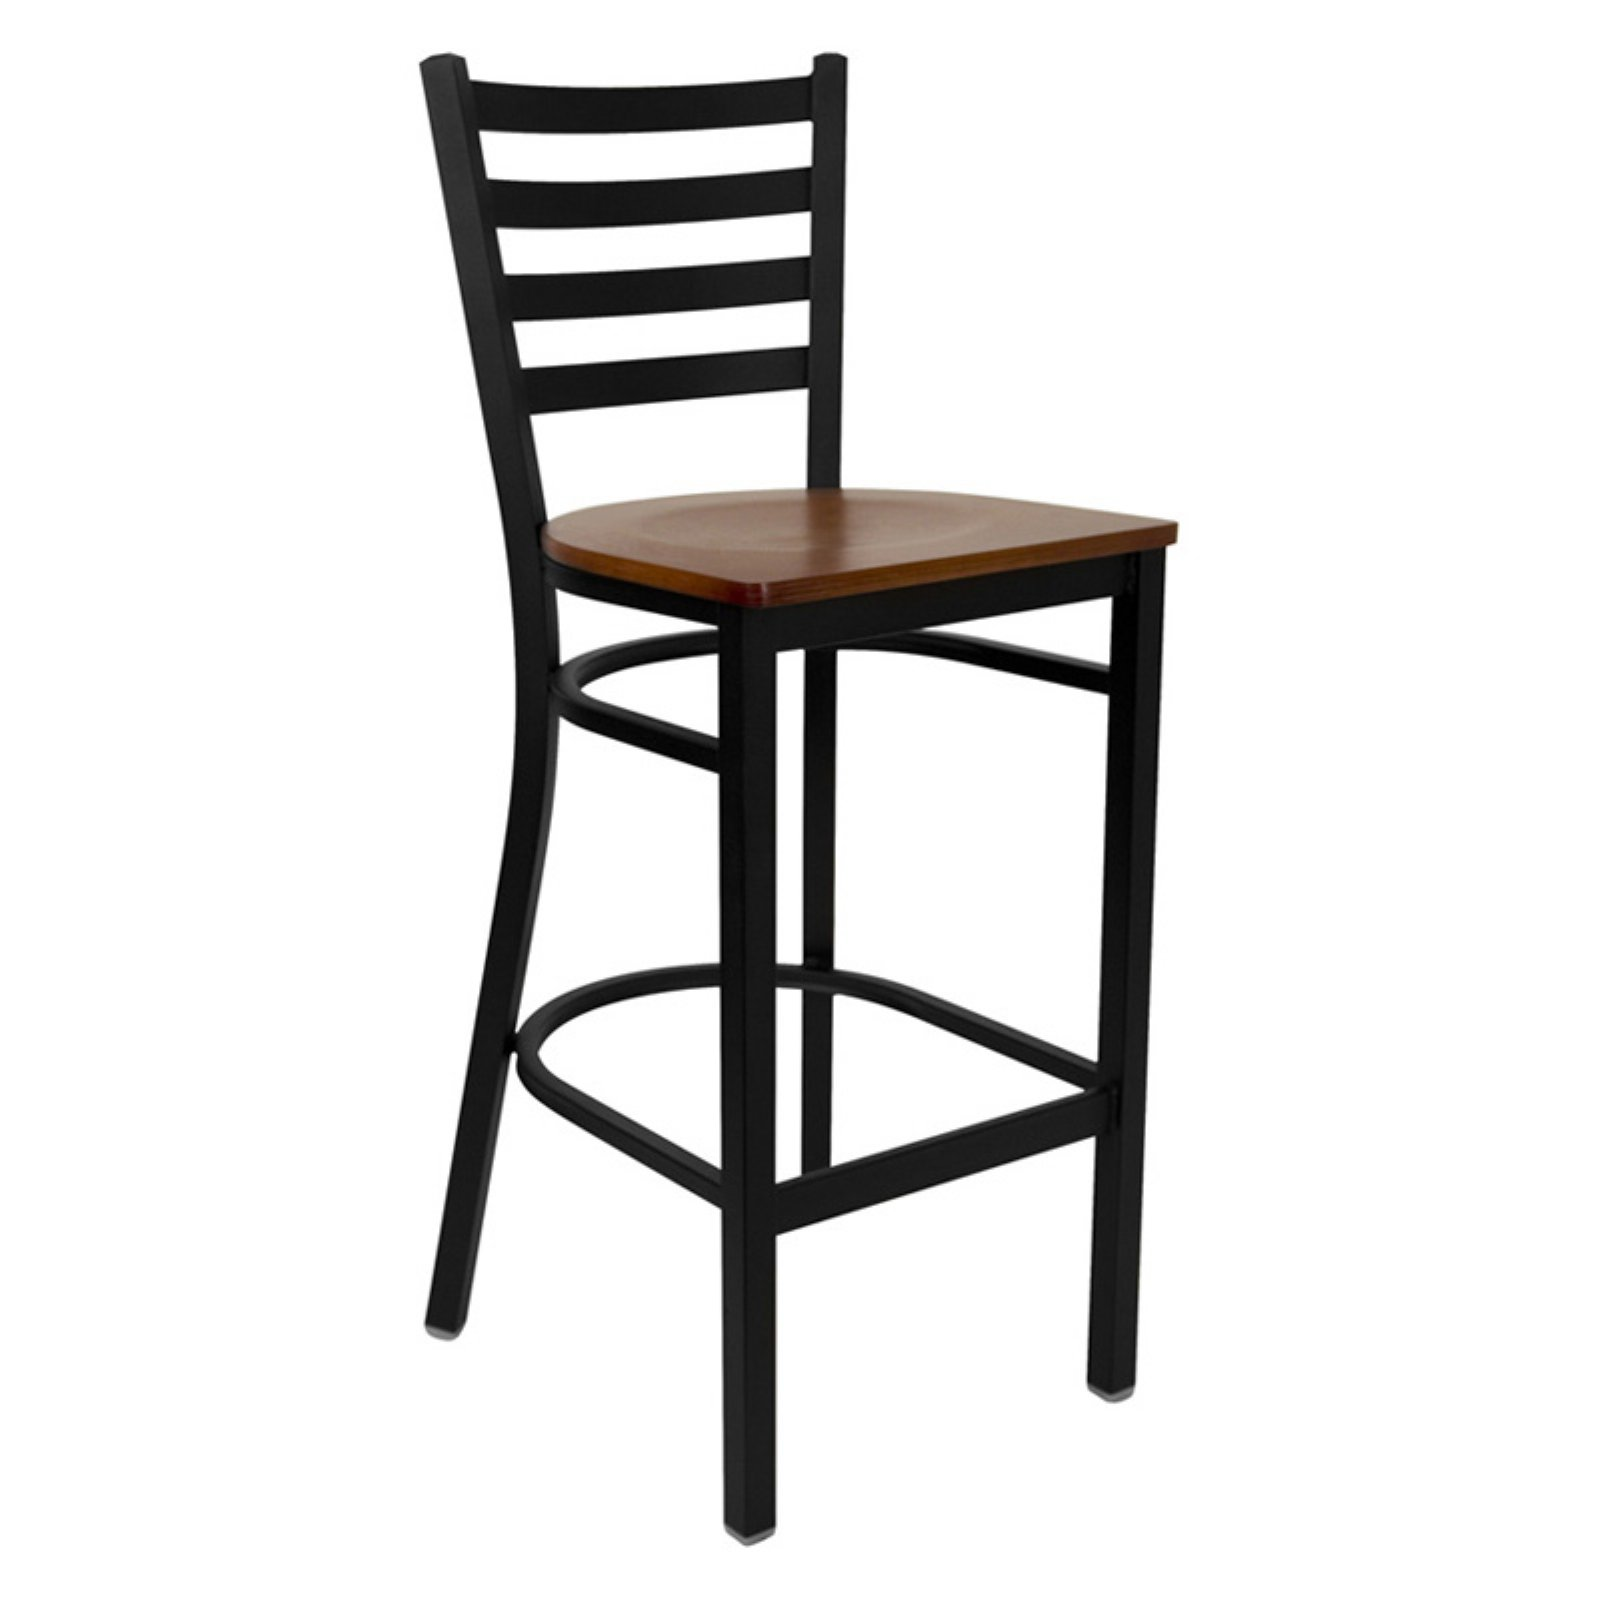 "Metal Ladder Back Bar Stool 29"", Black and Cherry"